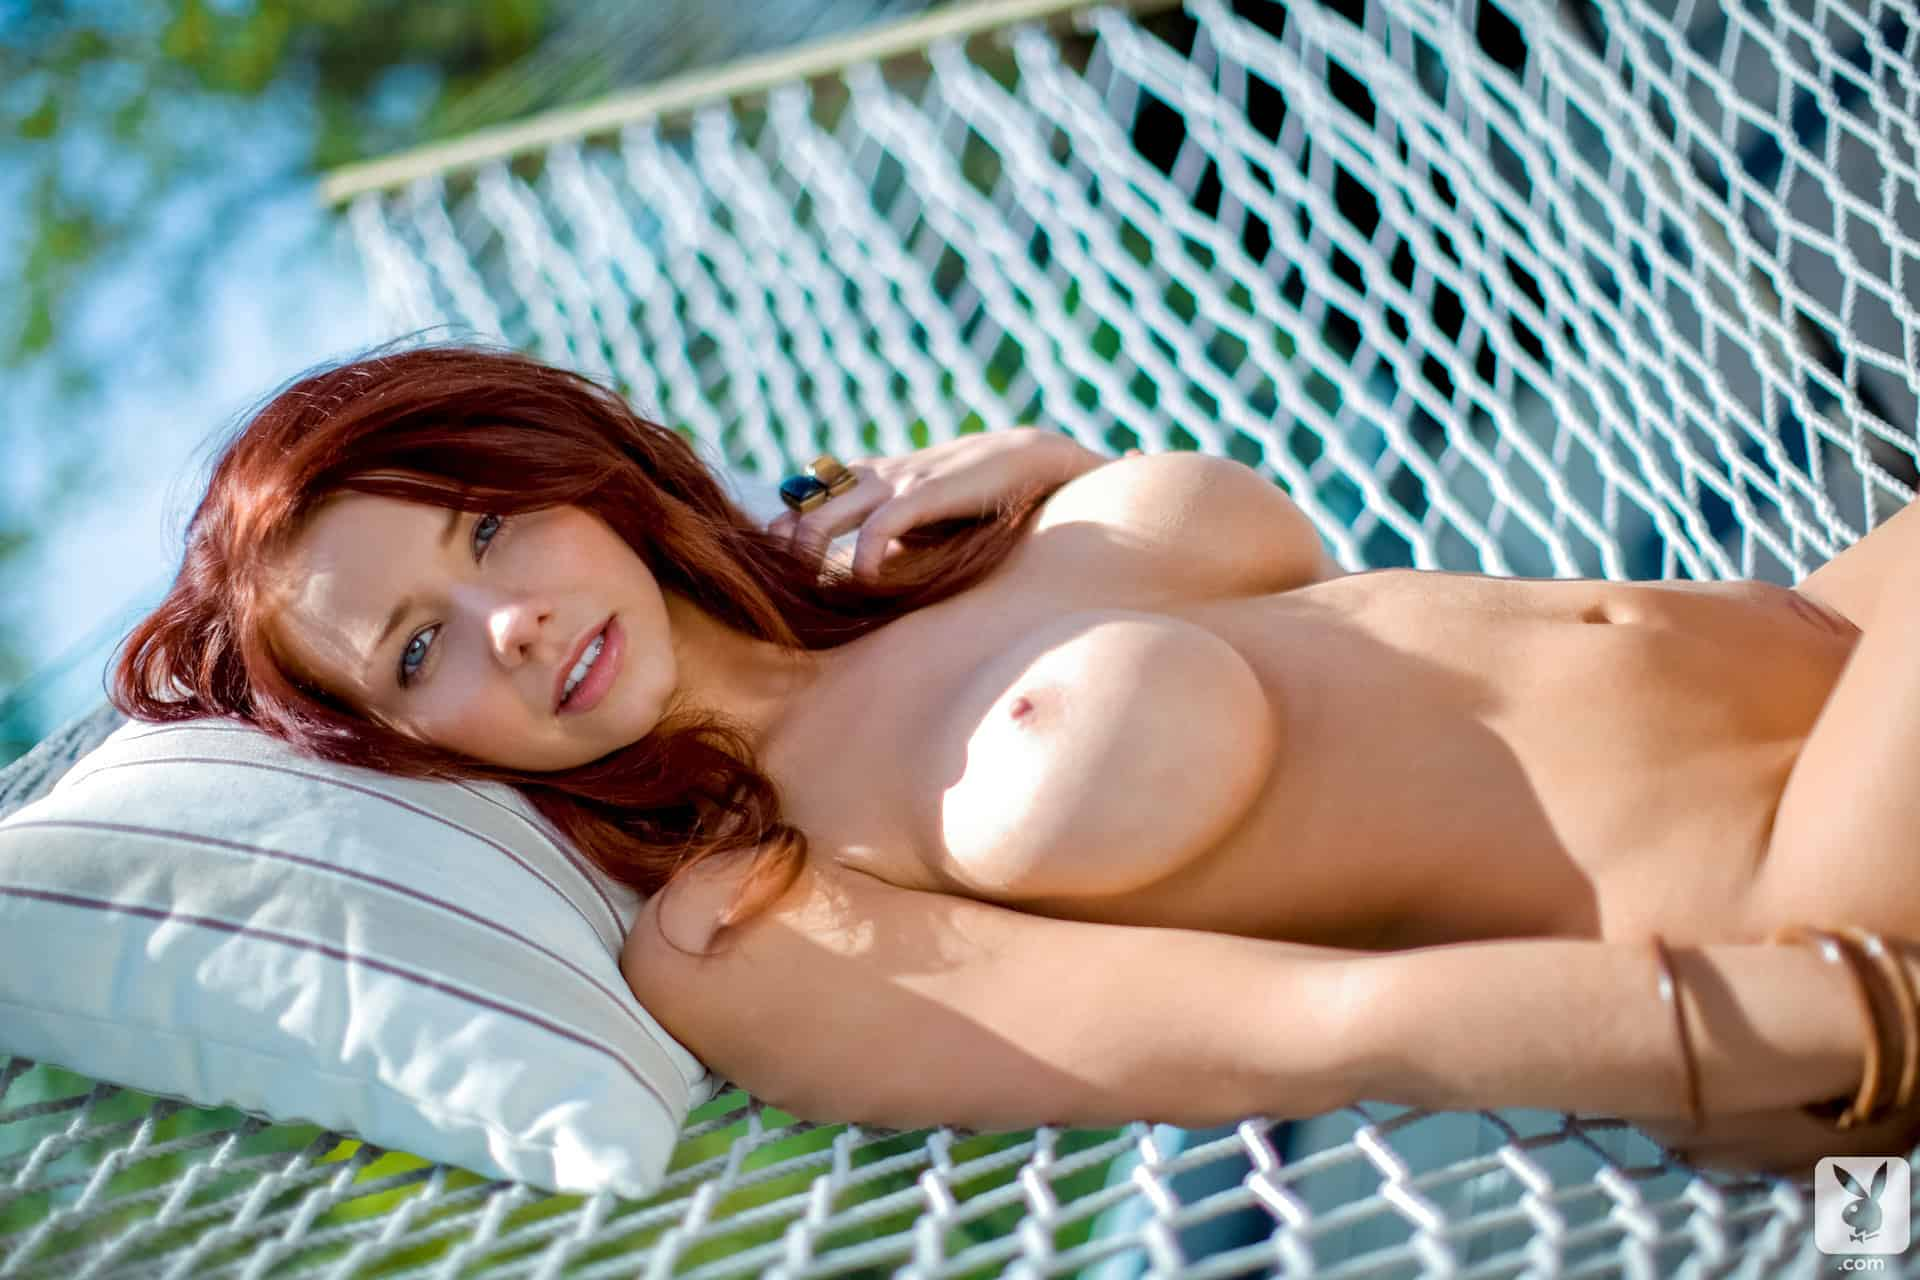 alyssa michelle phenomenal redhead all nude